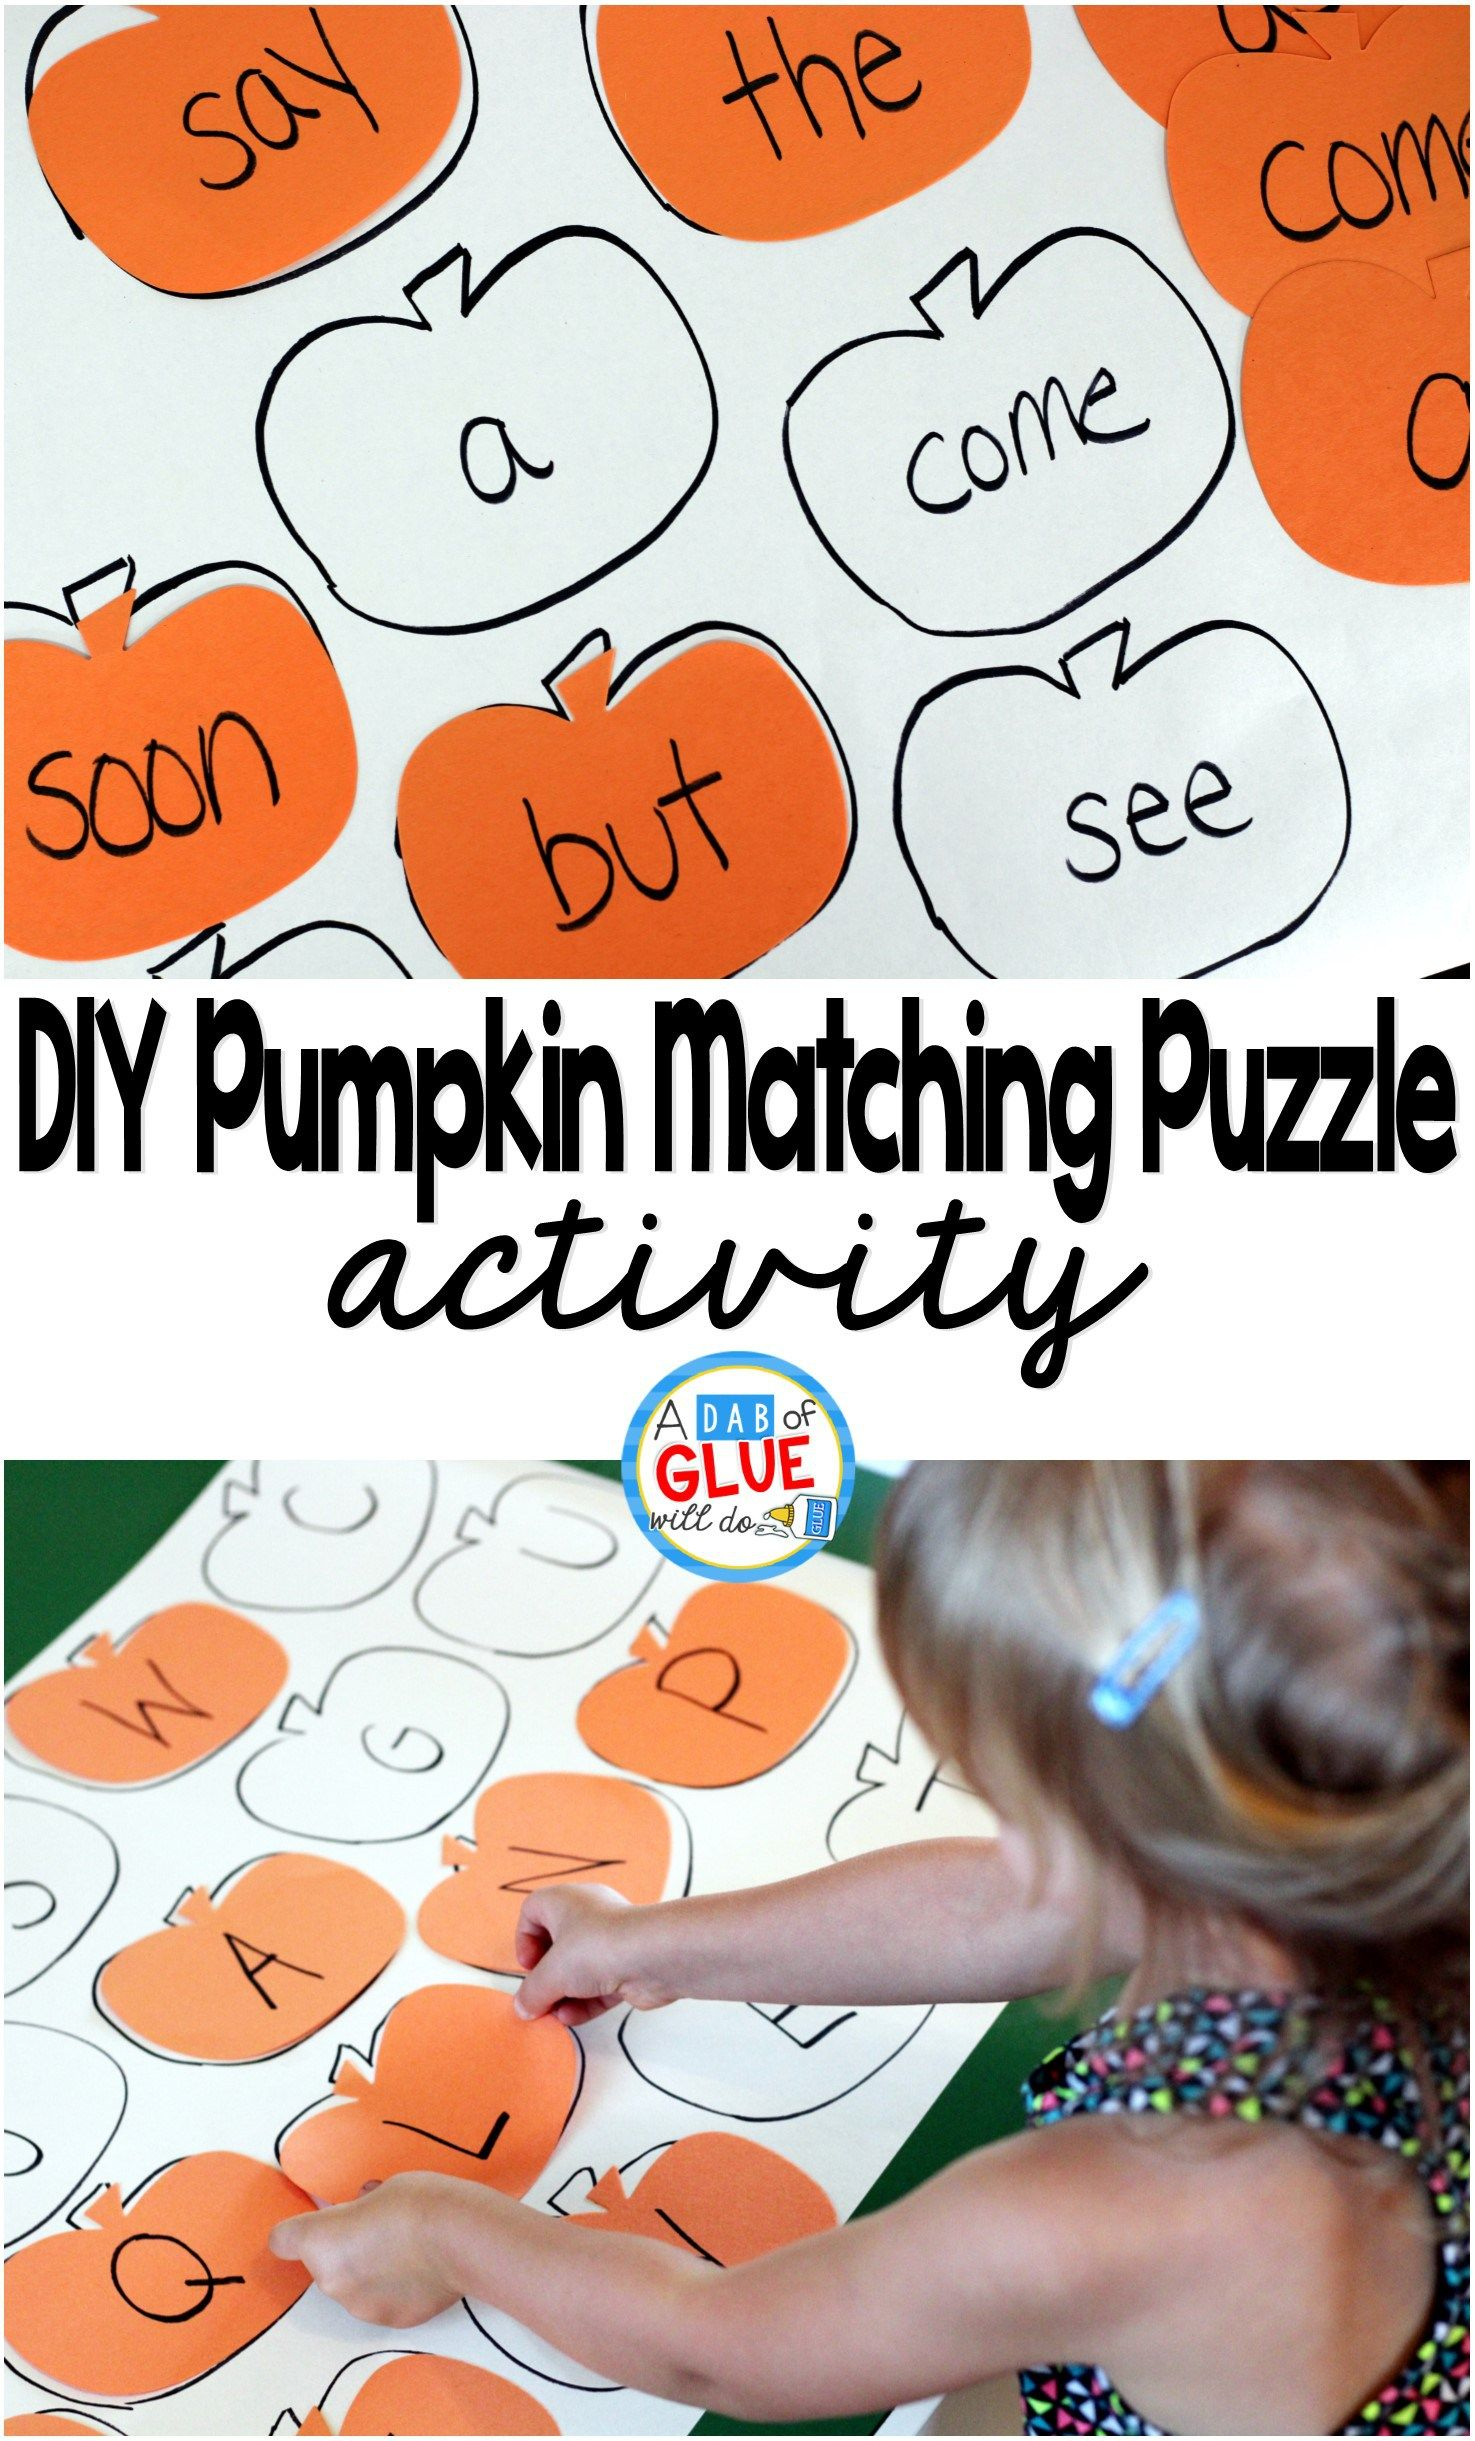 Diy Pumpkin Matching Puzzle